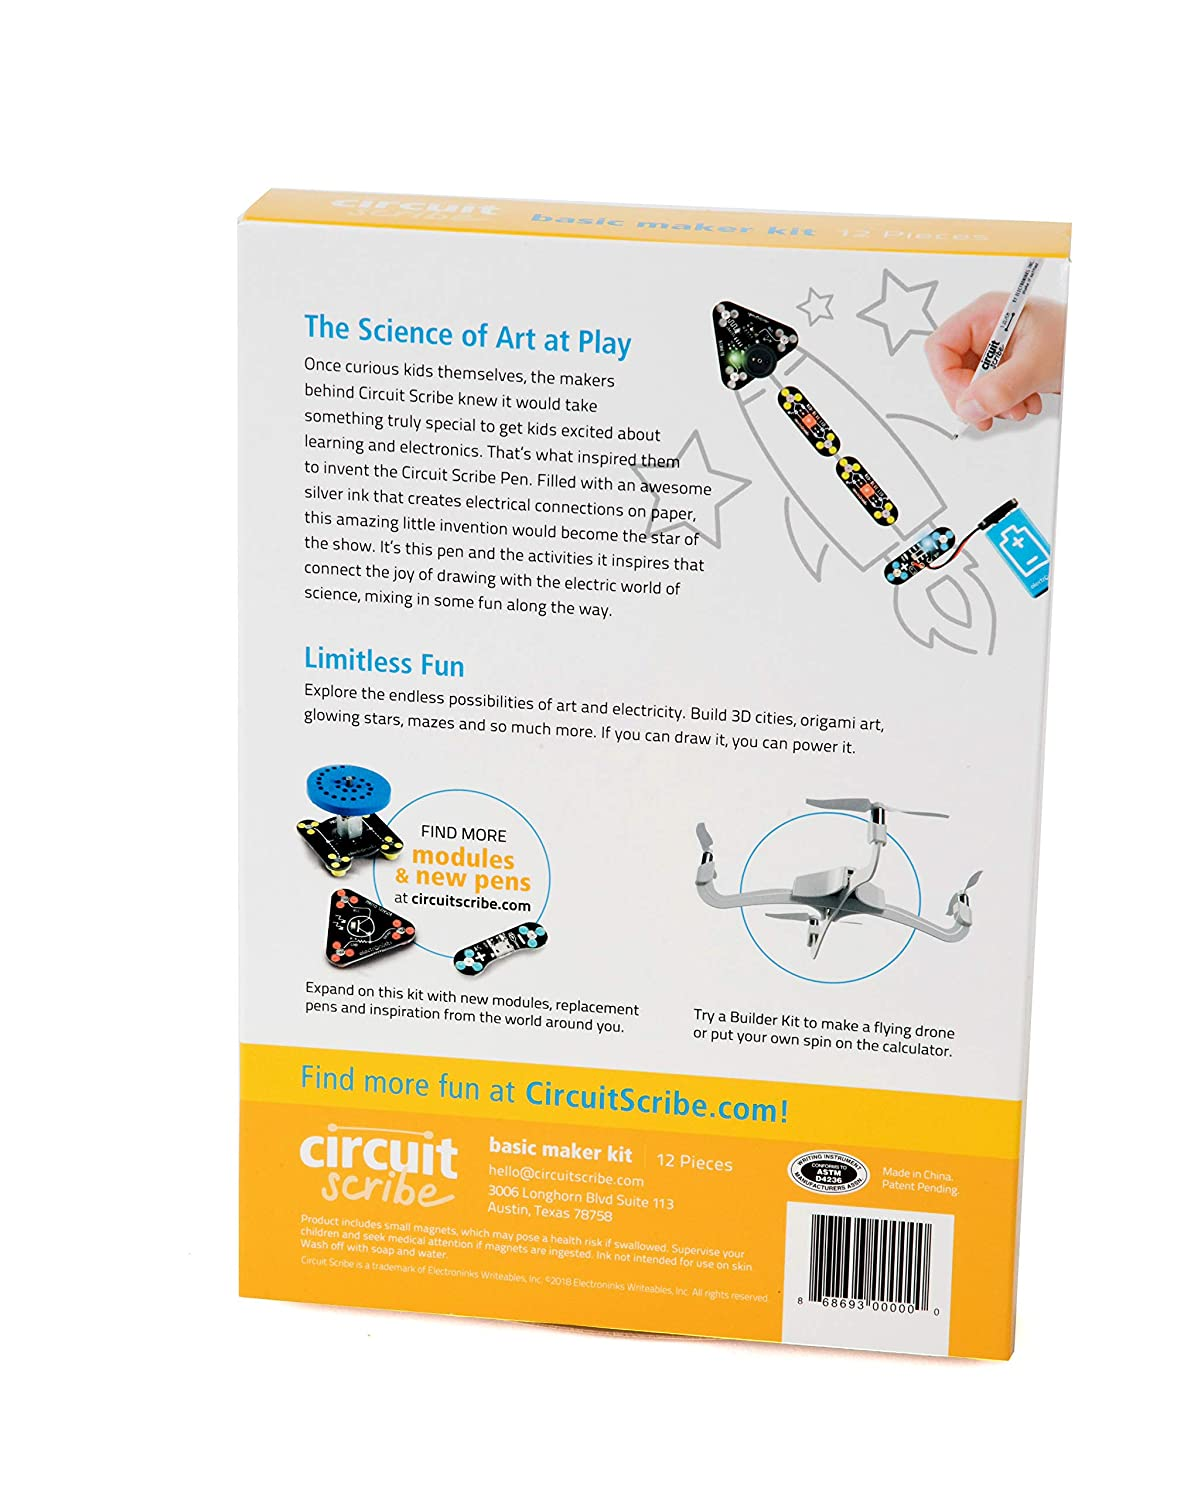 Circuit Scribe Basic Kit Includes Conductive Silver Another You Can Build That The Snap Circuits Motor Ink Pen To Learn Explore And Create Your Own Switches Toys Games